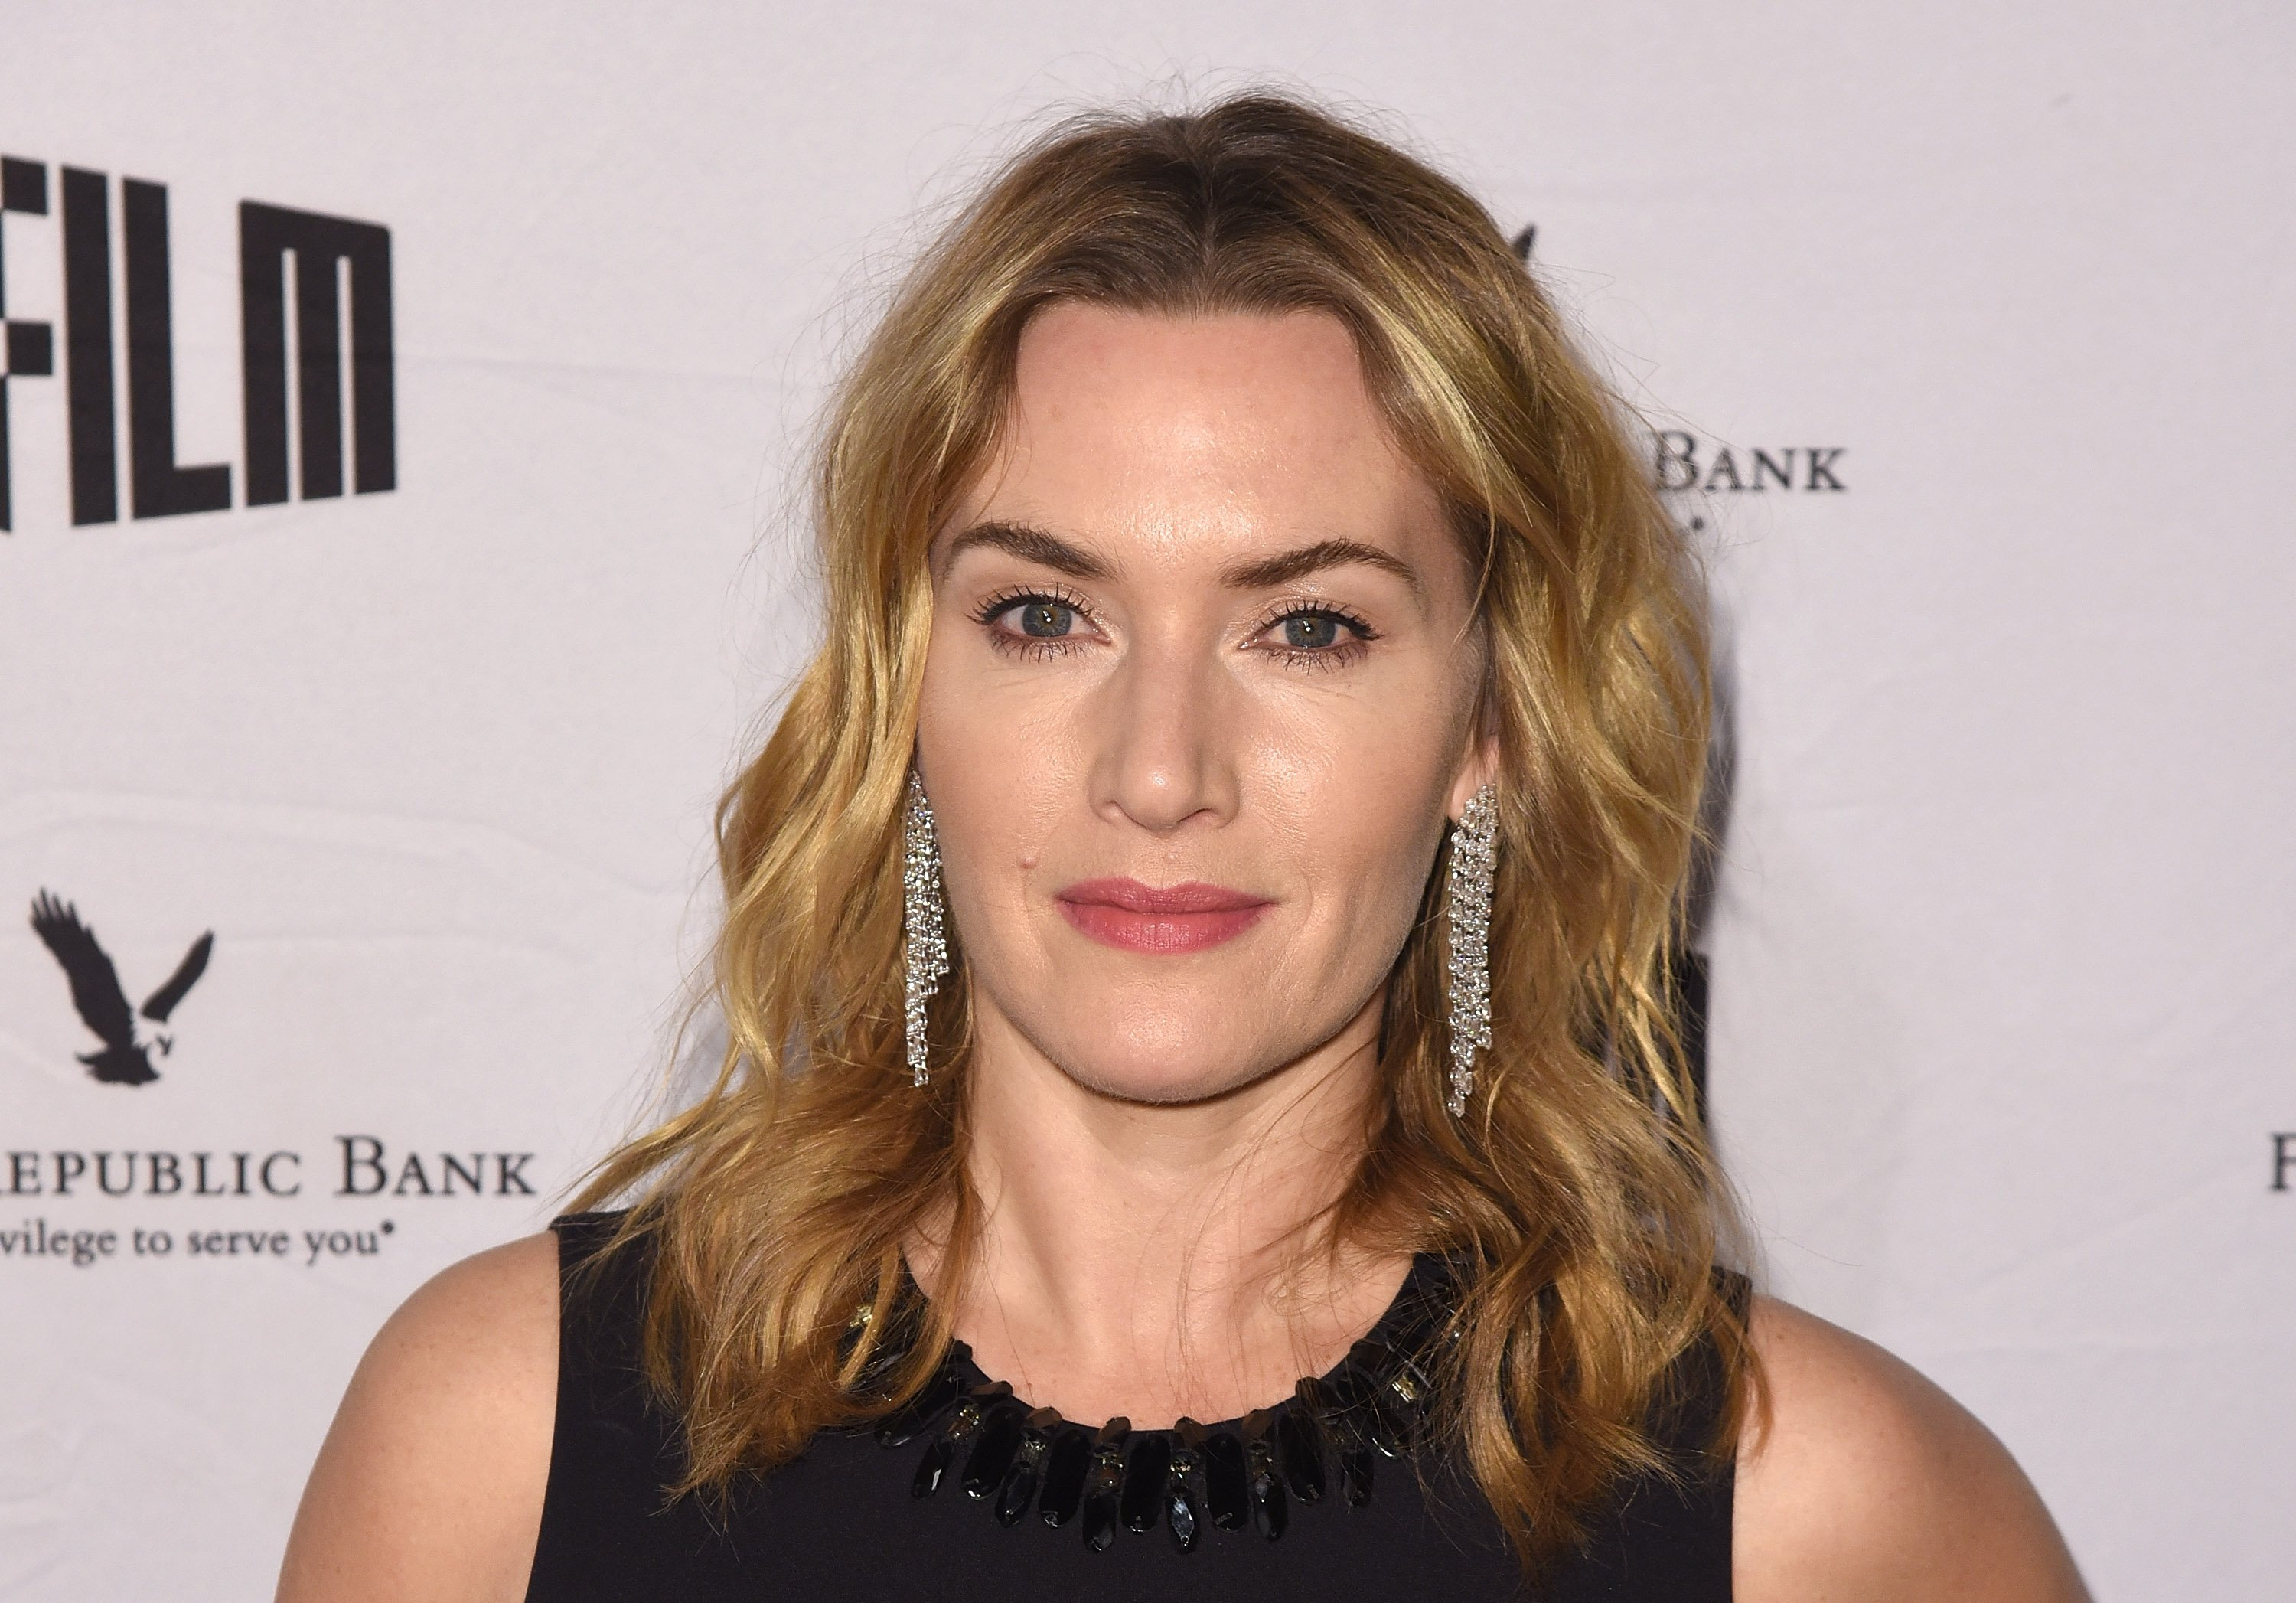 Kate Winslet,  5. Dezember 2017, Palace of Fine Arts Theatre in San Francisco, Kalifornien | Quelle: C Flanigan/Getty Images